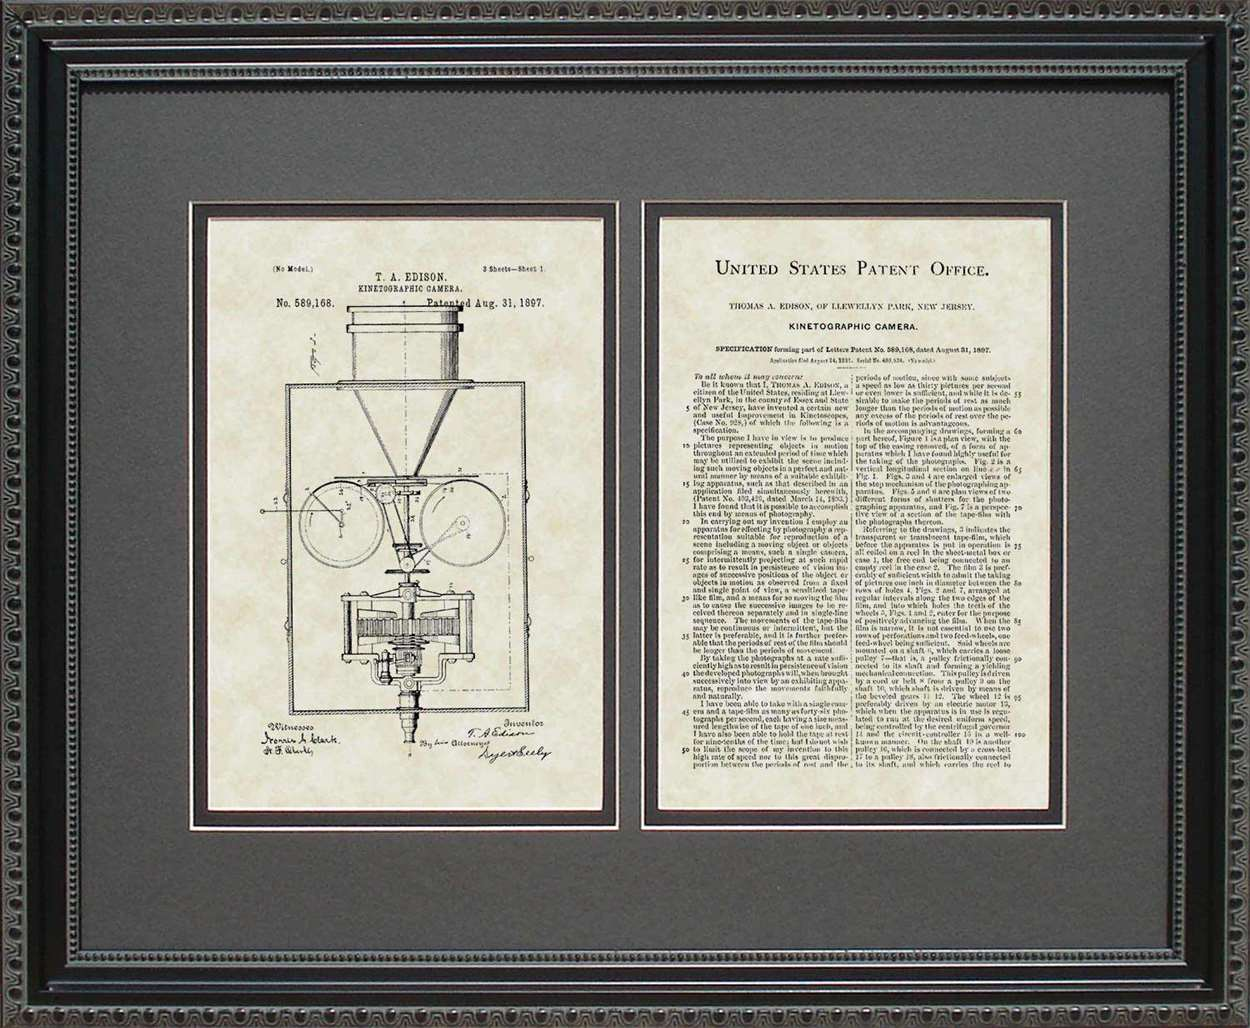 Movie Camera Patent, Art & Copy, Edison, 1897, 16x20